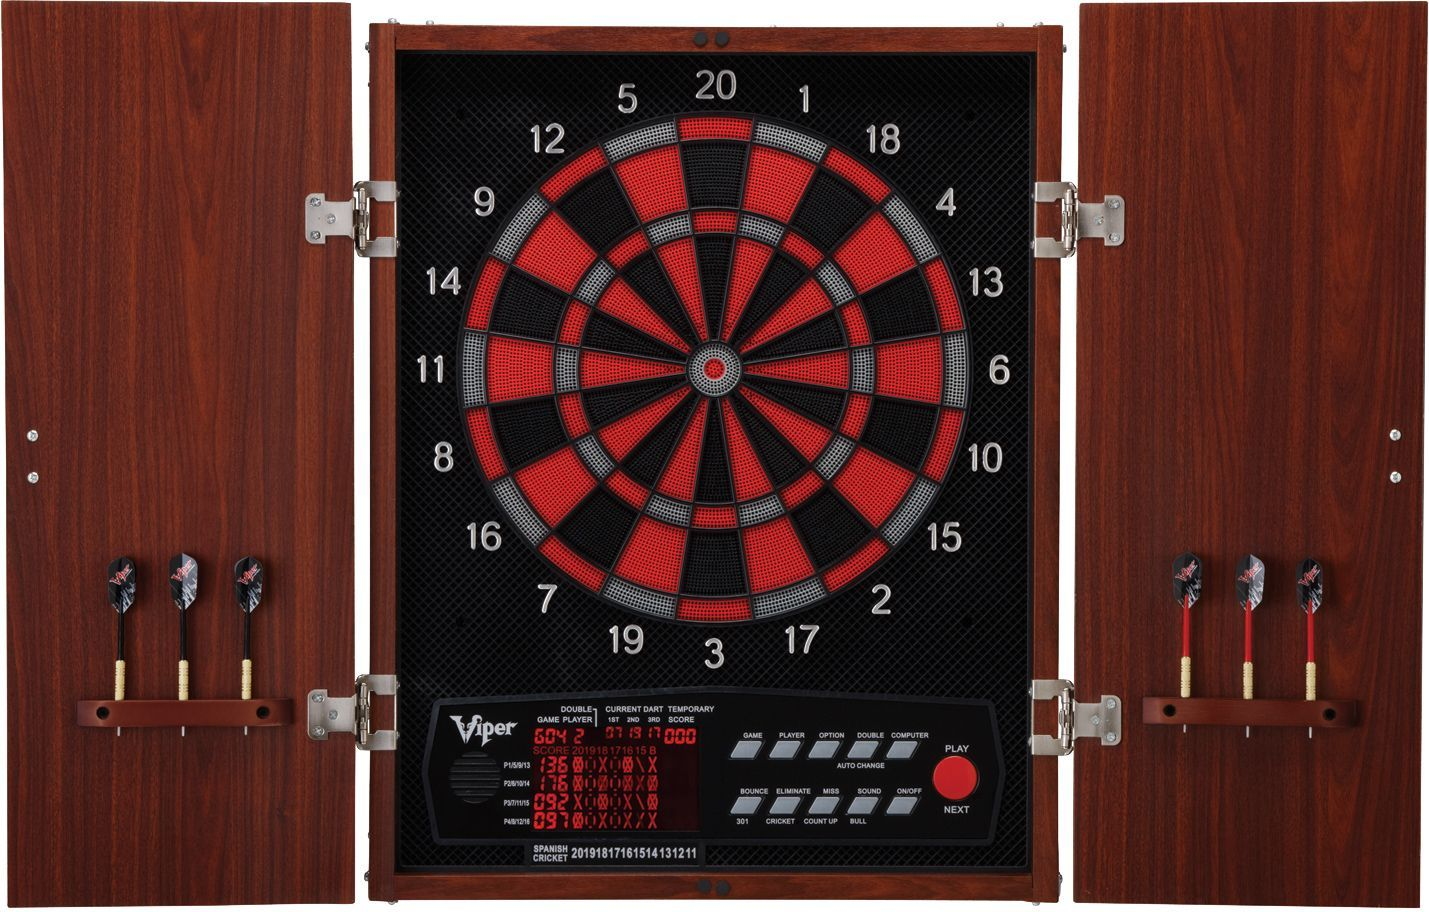 45+ Dart games to play alone ideas in 2021